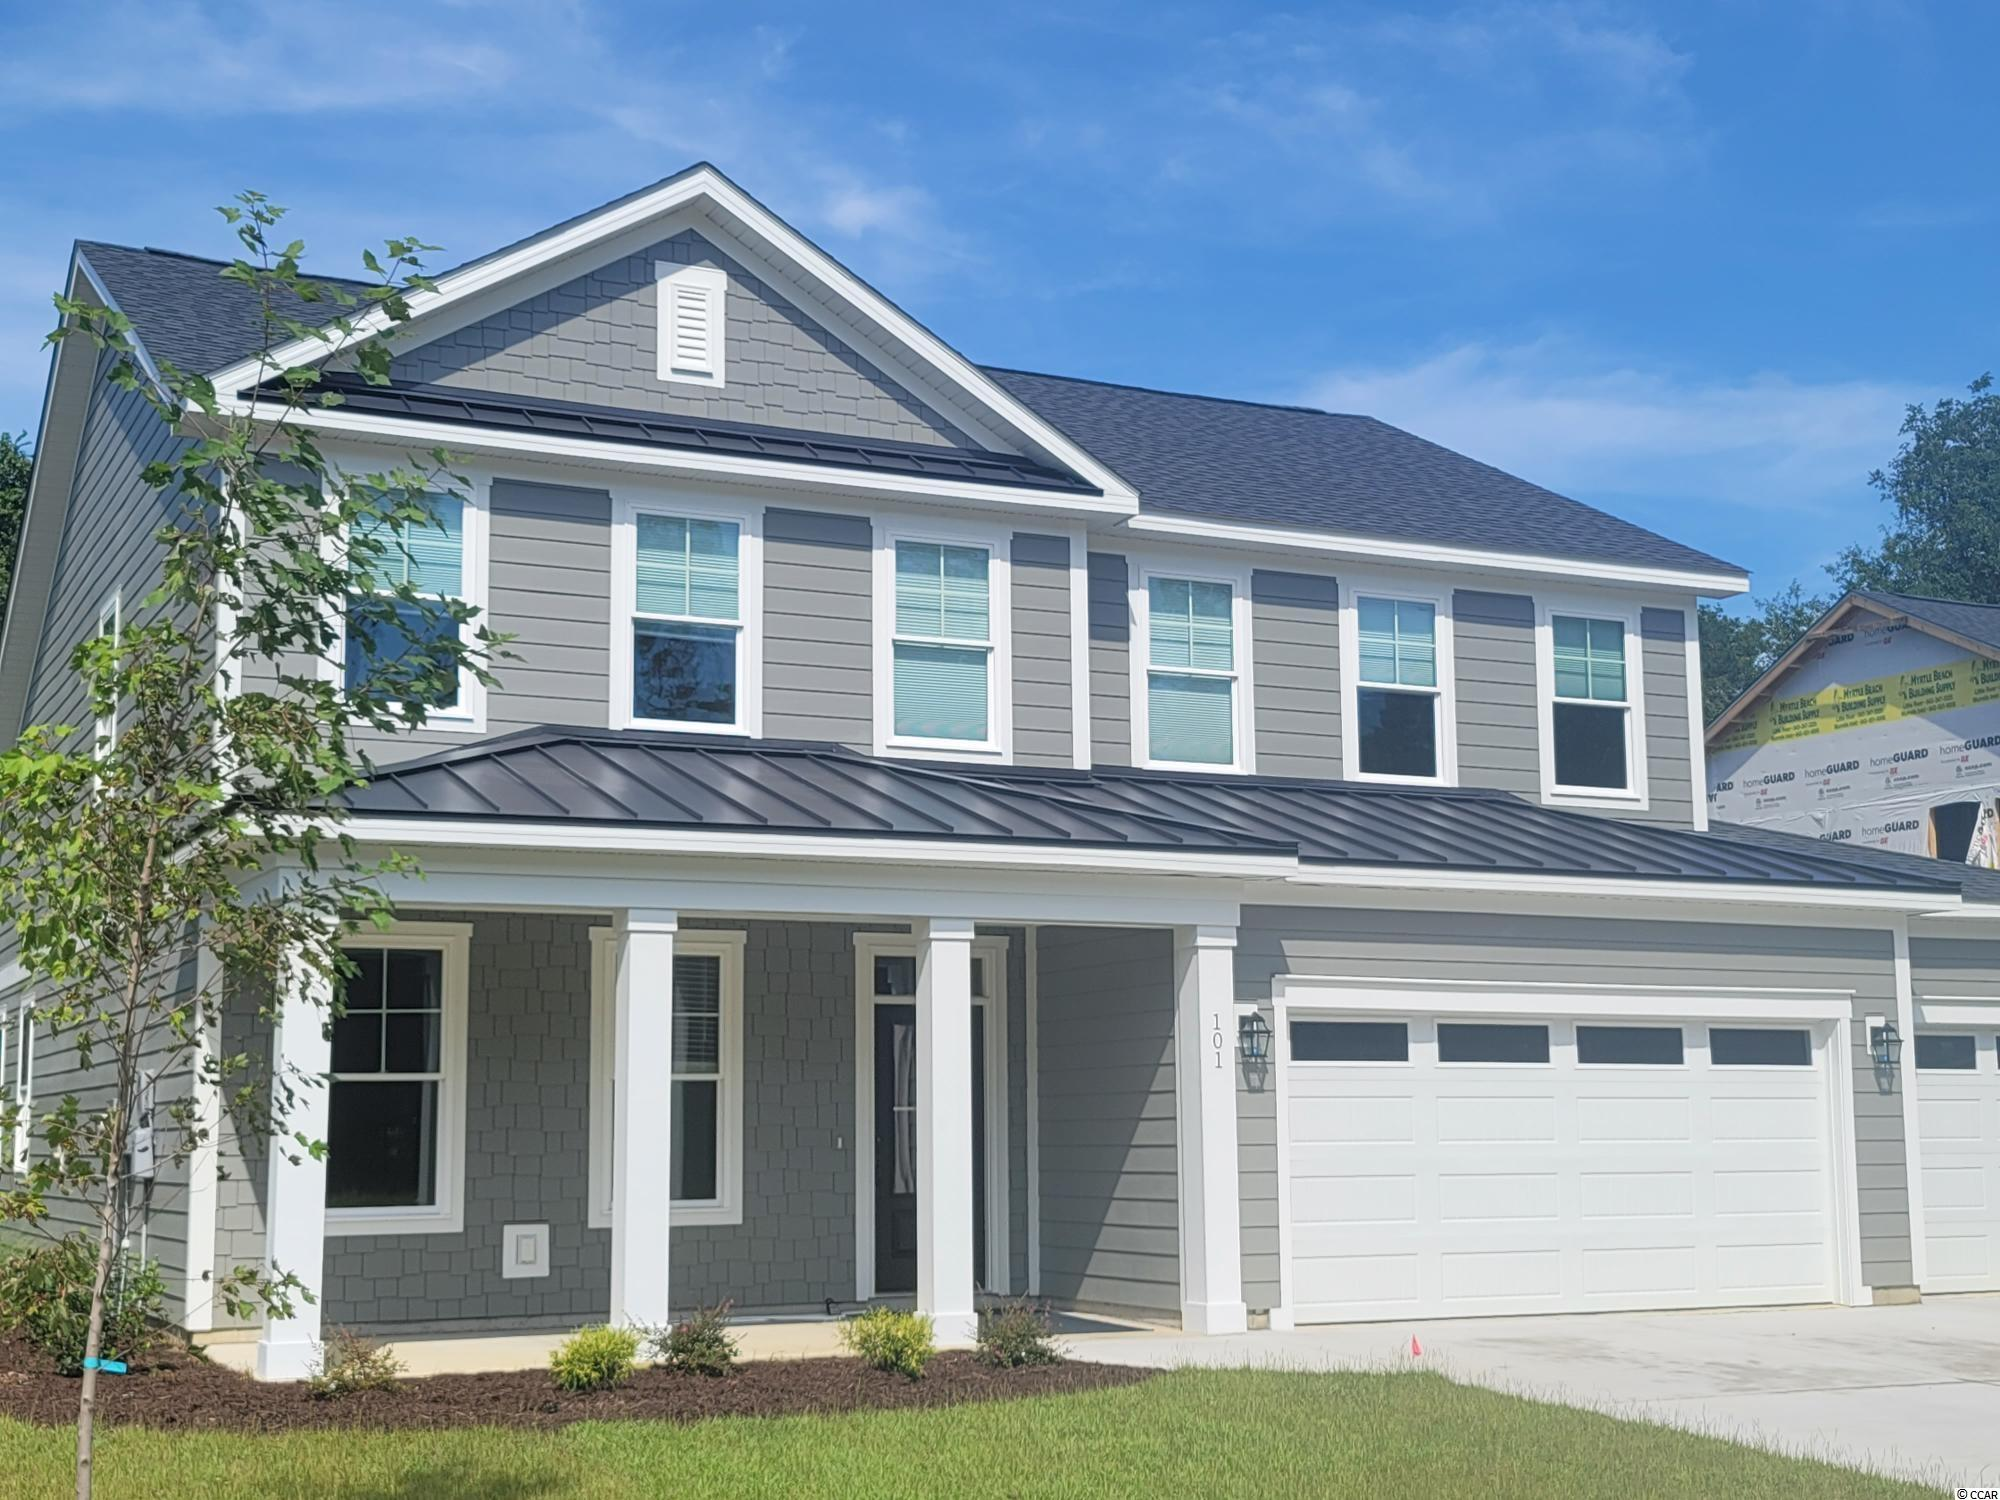 Summer move in!  Caroline Court is Murrells Inlets newest boutique community.  20 homesites and 6 plans to chose from.  This classic home will feature 4 bedroom, 2.5 baths and a 3 CAR GARAGE!  The first floor owners retreat has plenty of storage with 2 walk in closets.  The owner's bath features a huge walk in shower, double sinks, and a separate water closet. Caroline Court offers easy access to the Waccamaw River and public boat launch, Marshwalk, and area beaches.